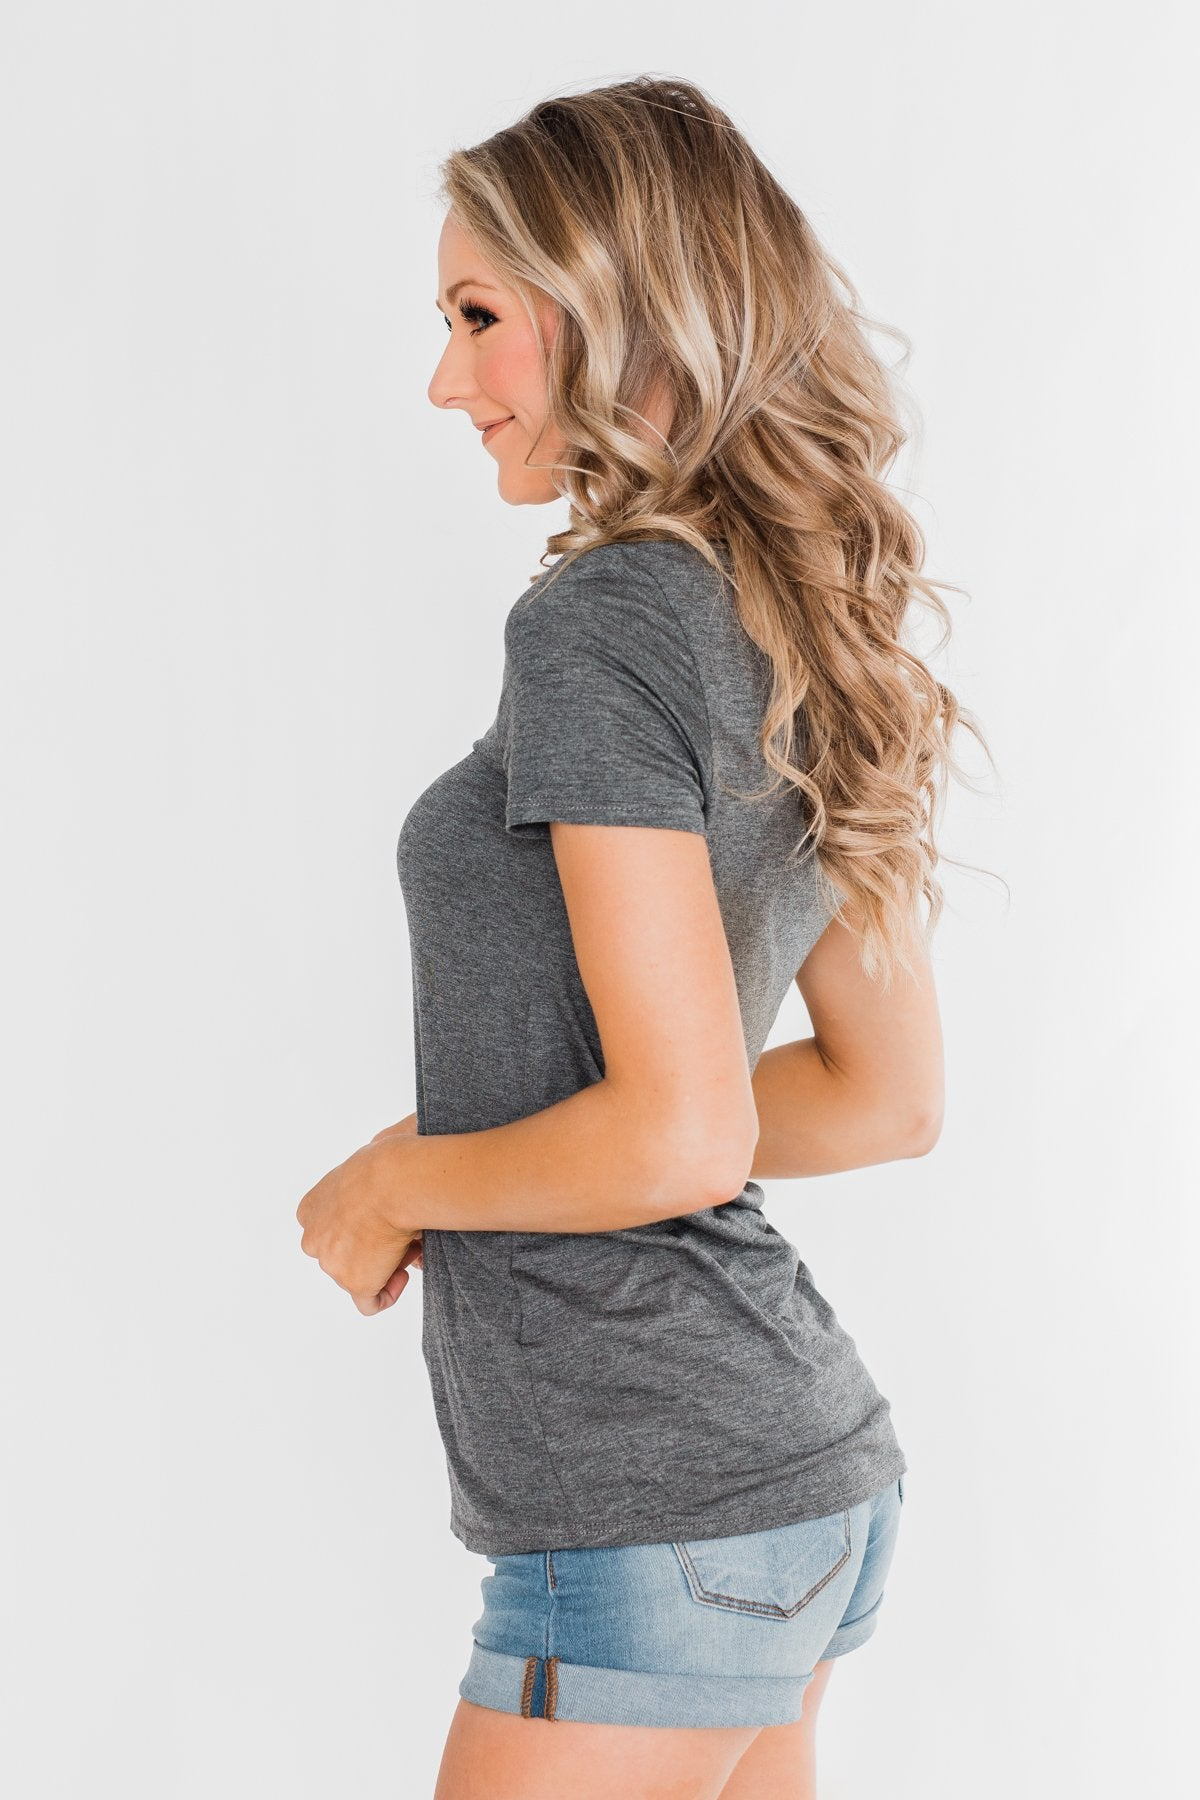 Meet Me Here Short Sleeve Top - Light Charcoal